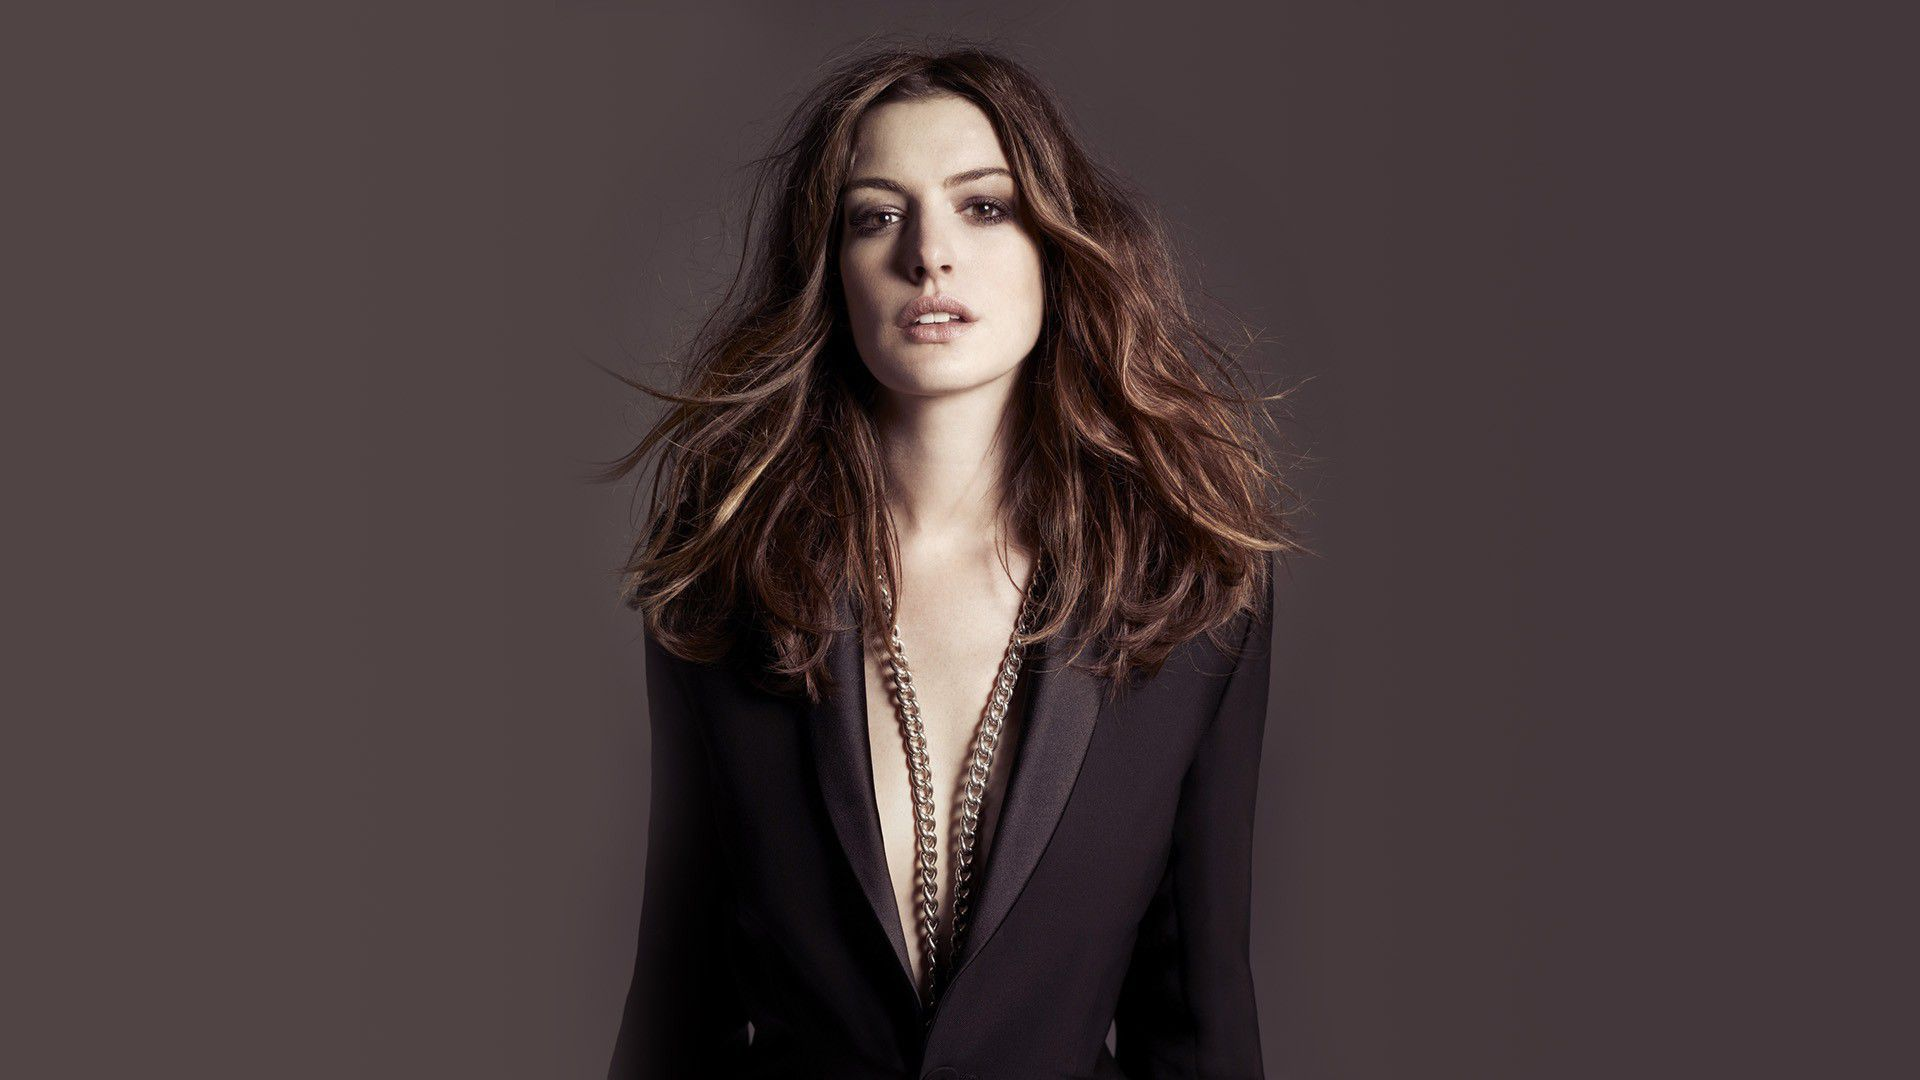 Ann Hathaway High Definition Wallpapers